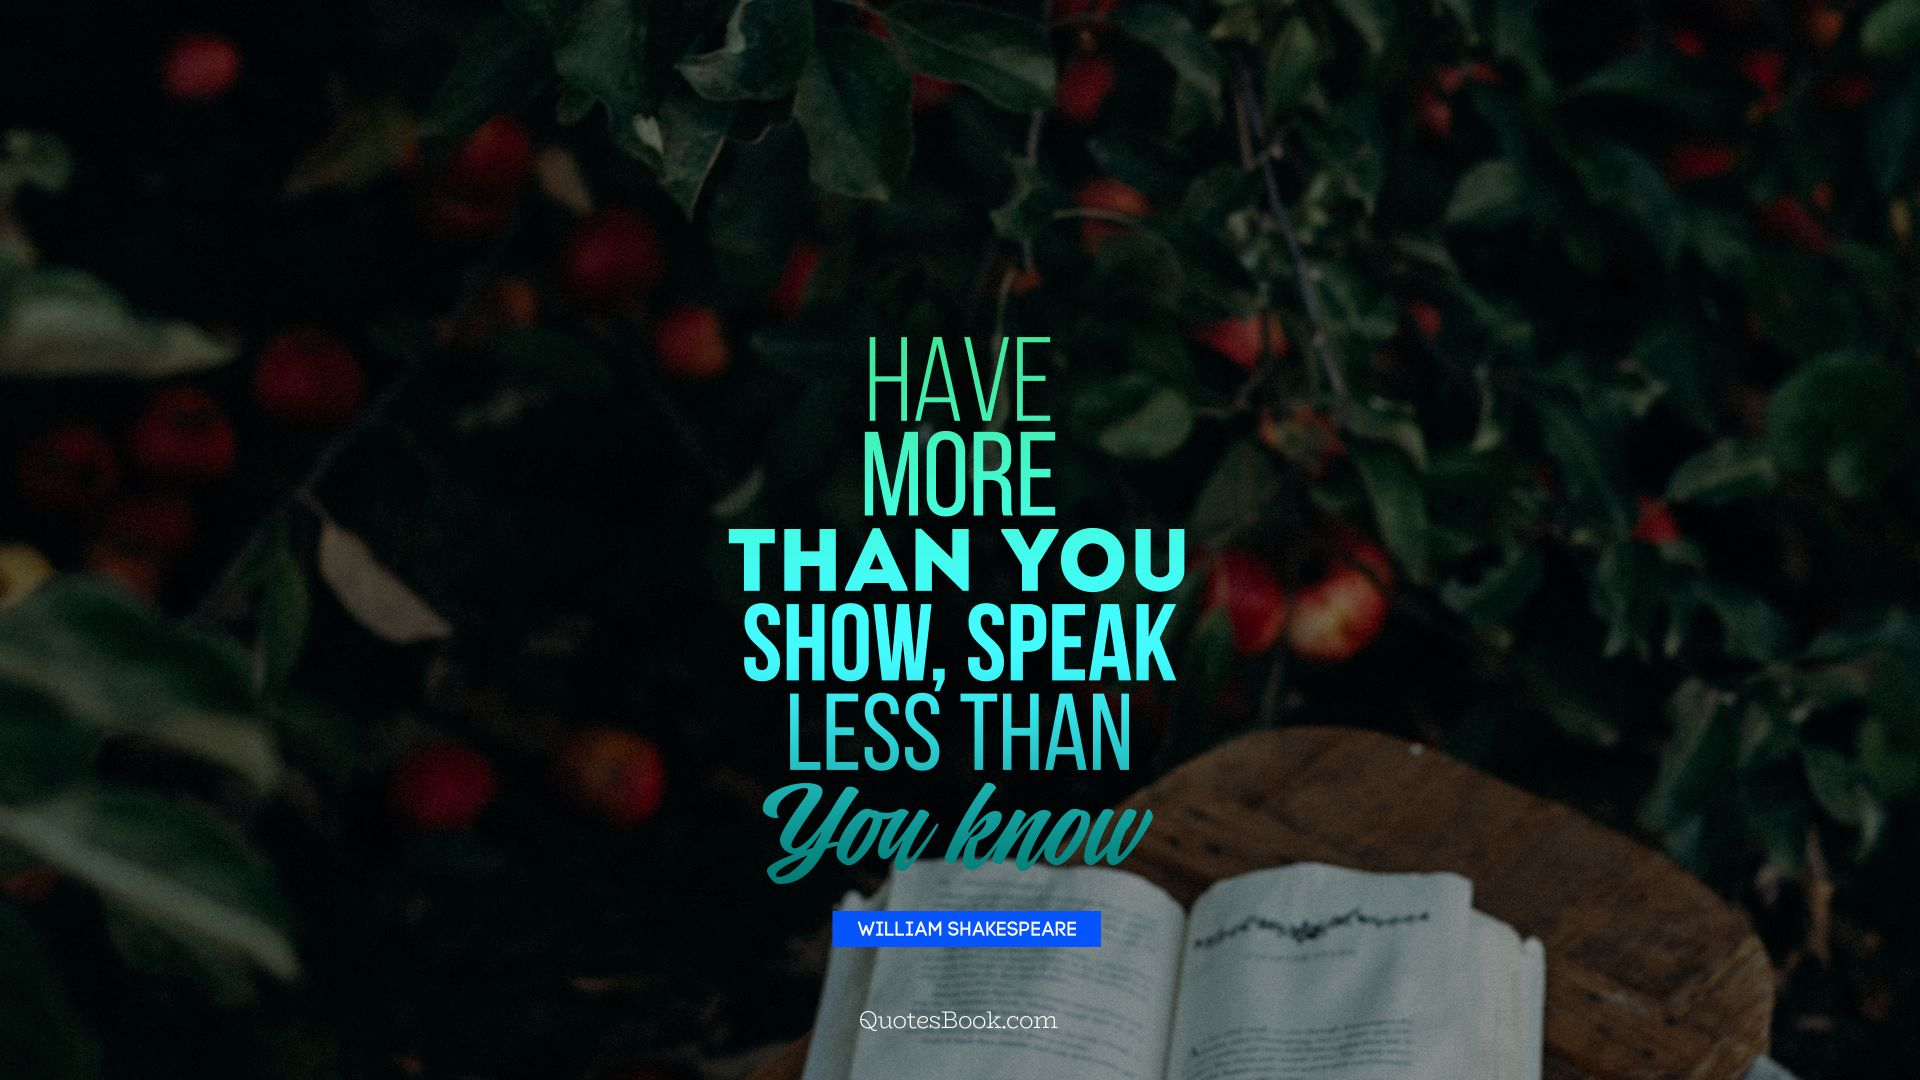 Have more than you show, speak less than you know. - Quote by William Shakespeare